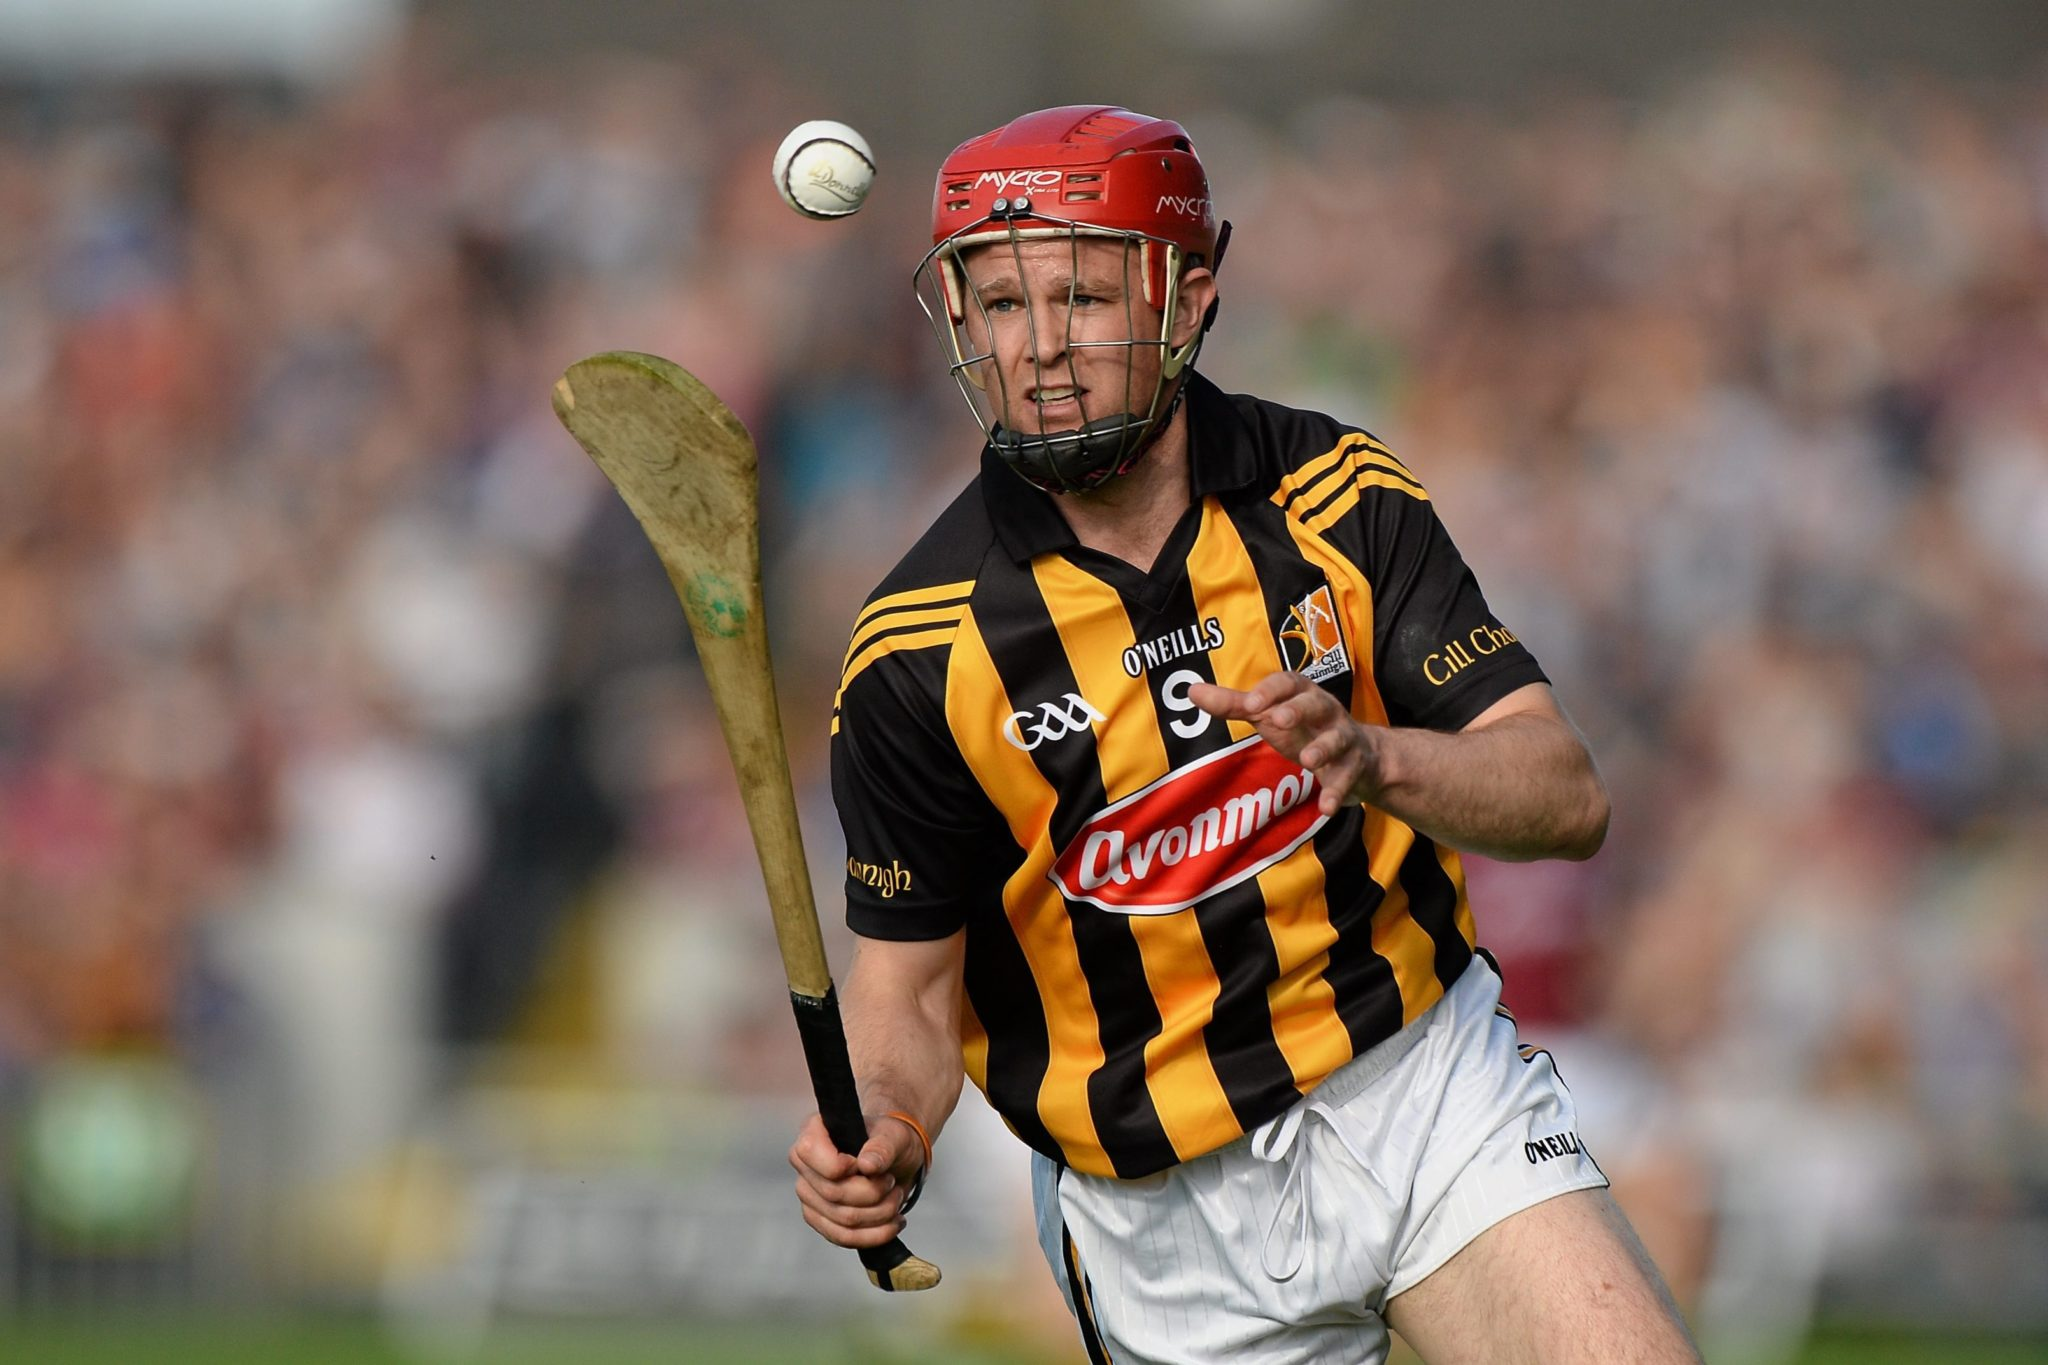 Tommy Walsh